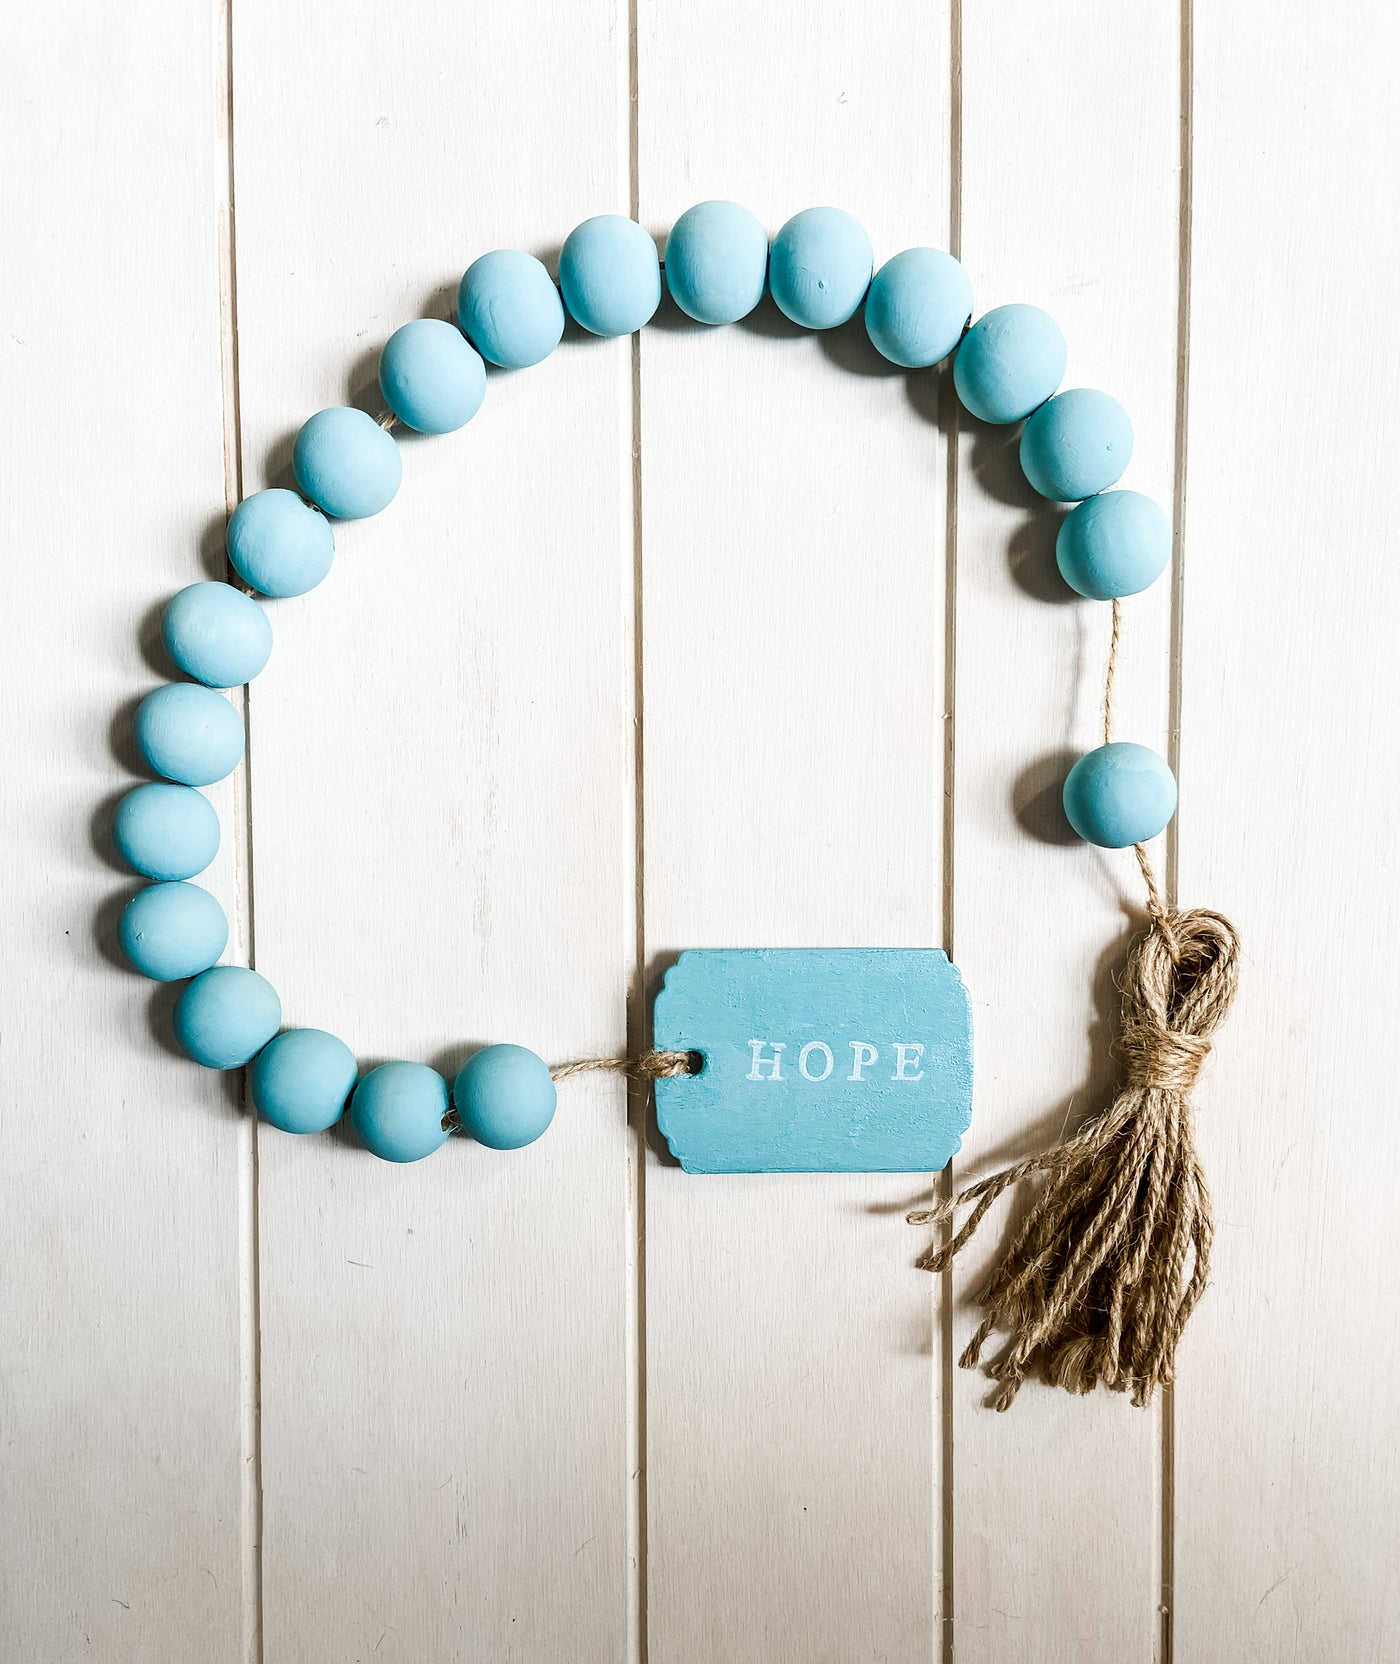 Hope Hand Painted Wooden Bead Garland - Salt and Branch